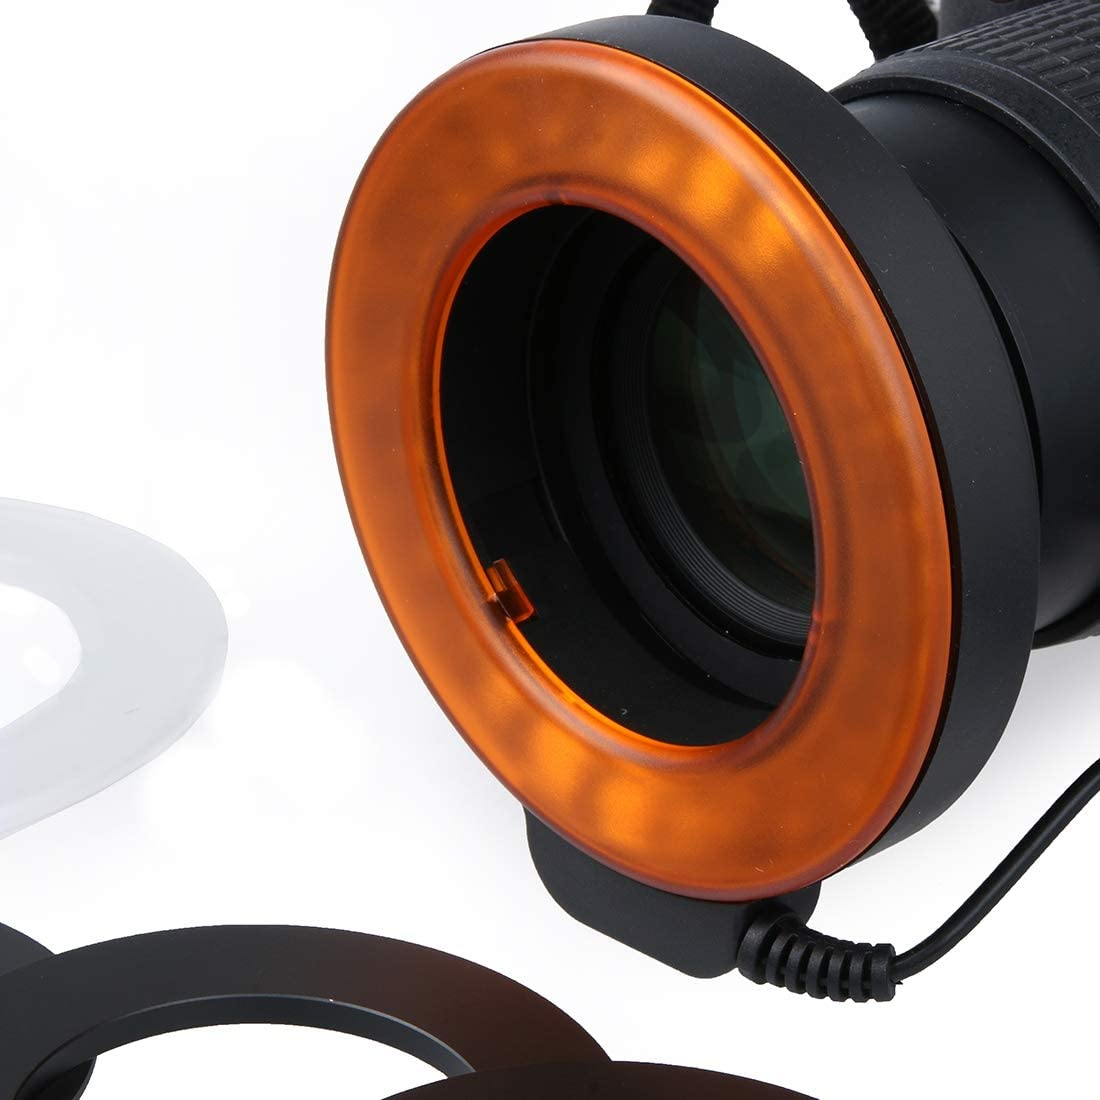 49mm//52mm//55mm//58mm//62mm//67mm Color : Orange for Macro Lens Orange Huamentalliance Camera Acccessories Flashes/&Accessories Circular LED Flash Light with 48 LED Lights /& 6 Adapter Rings